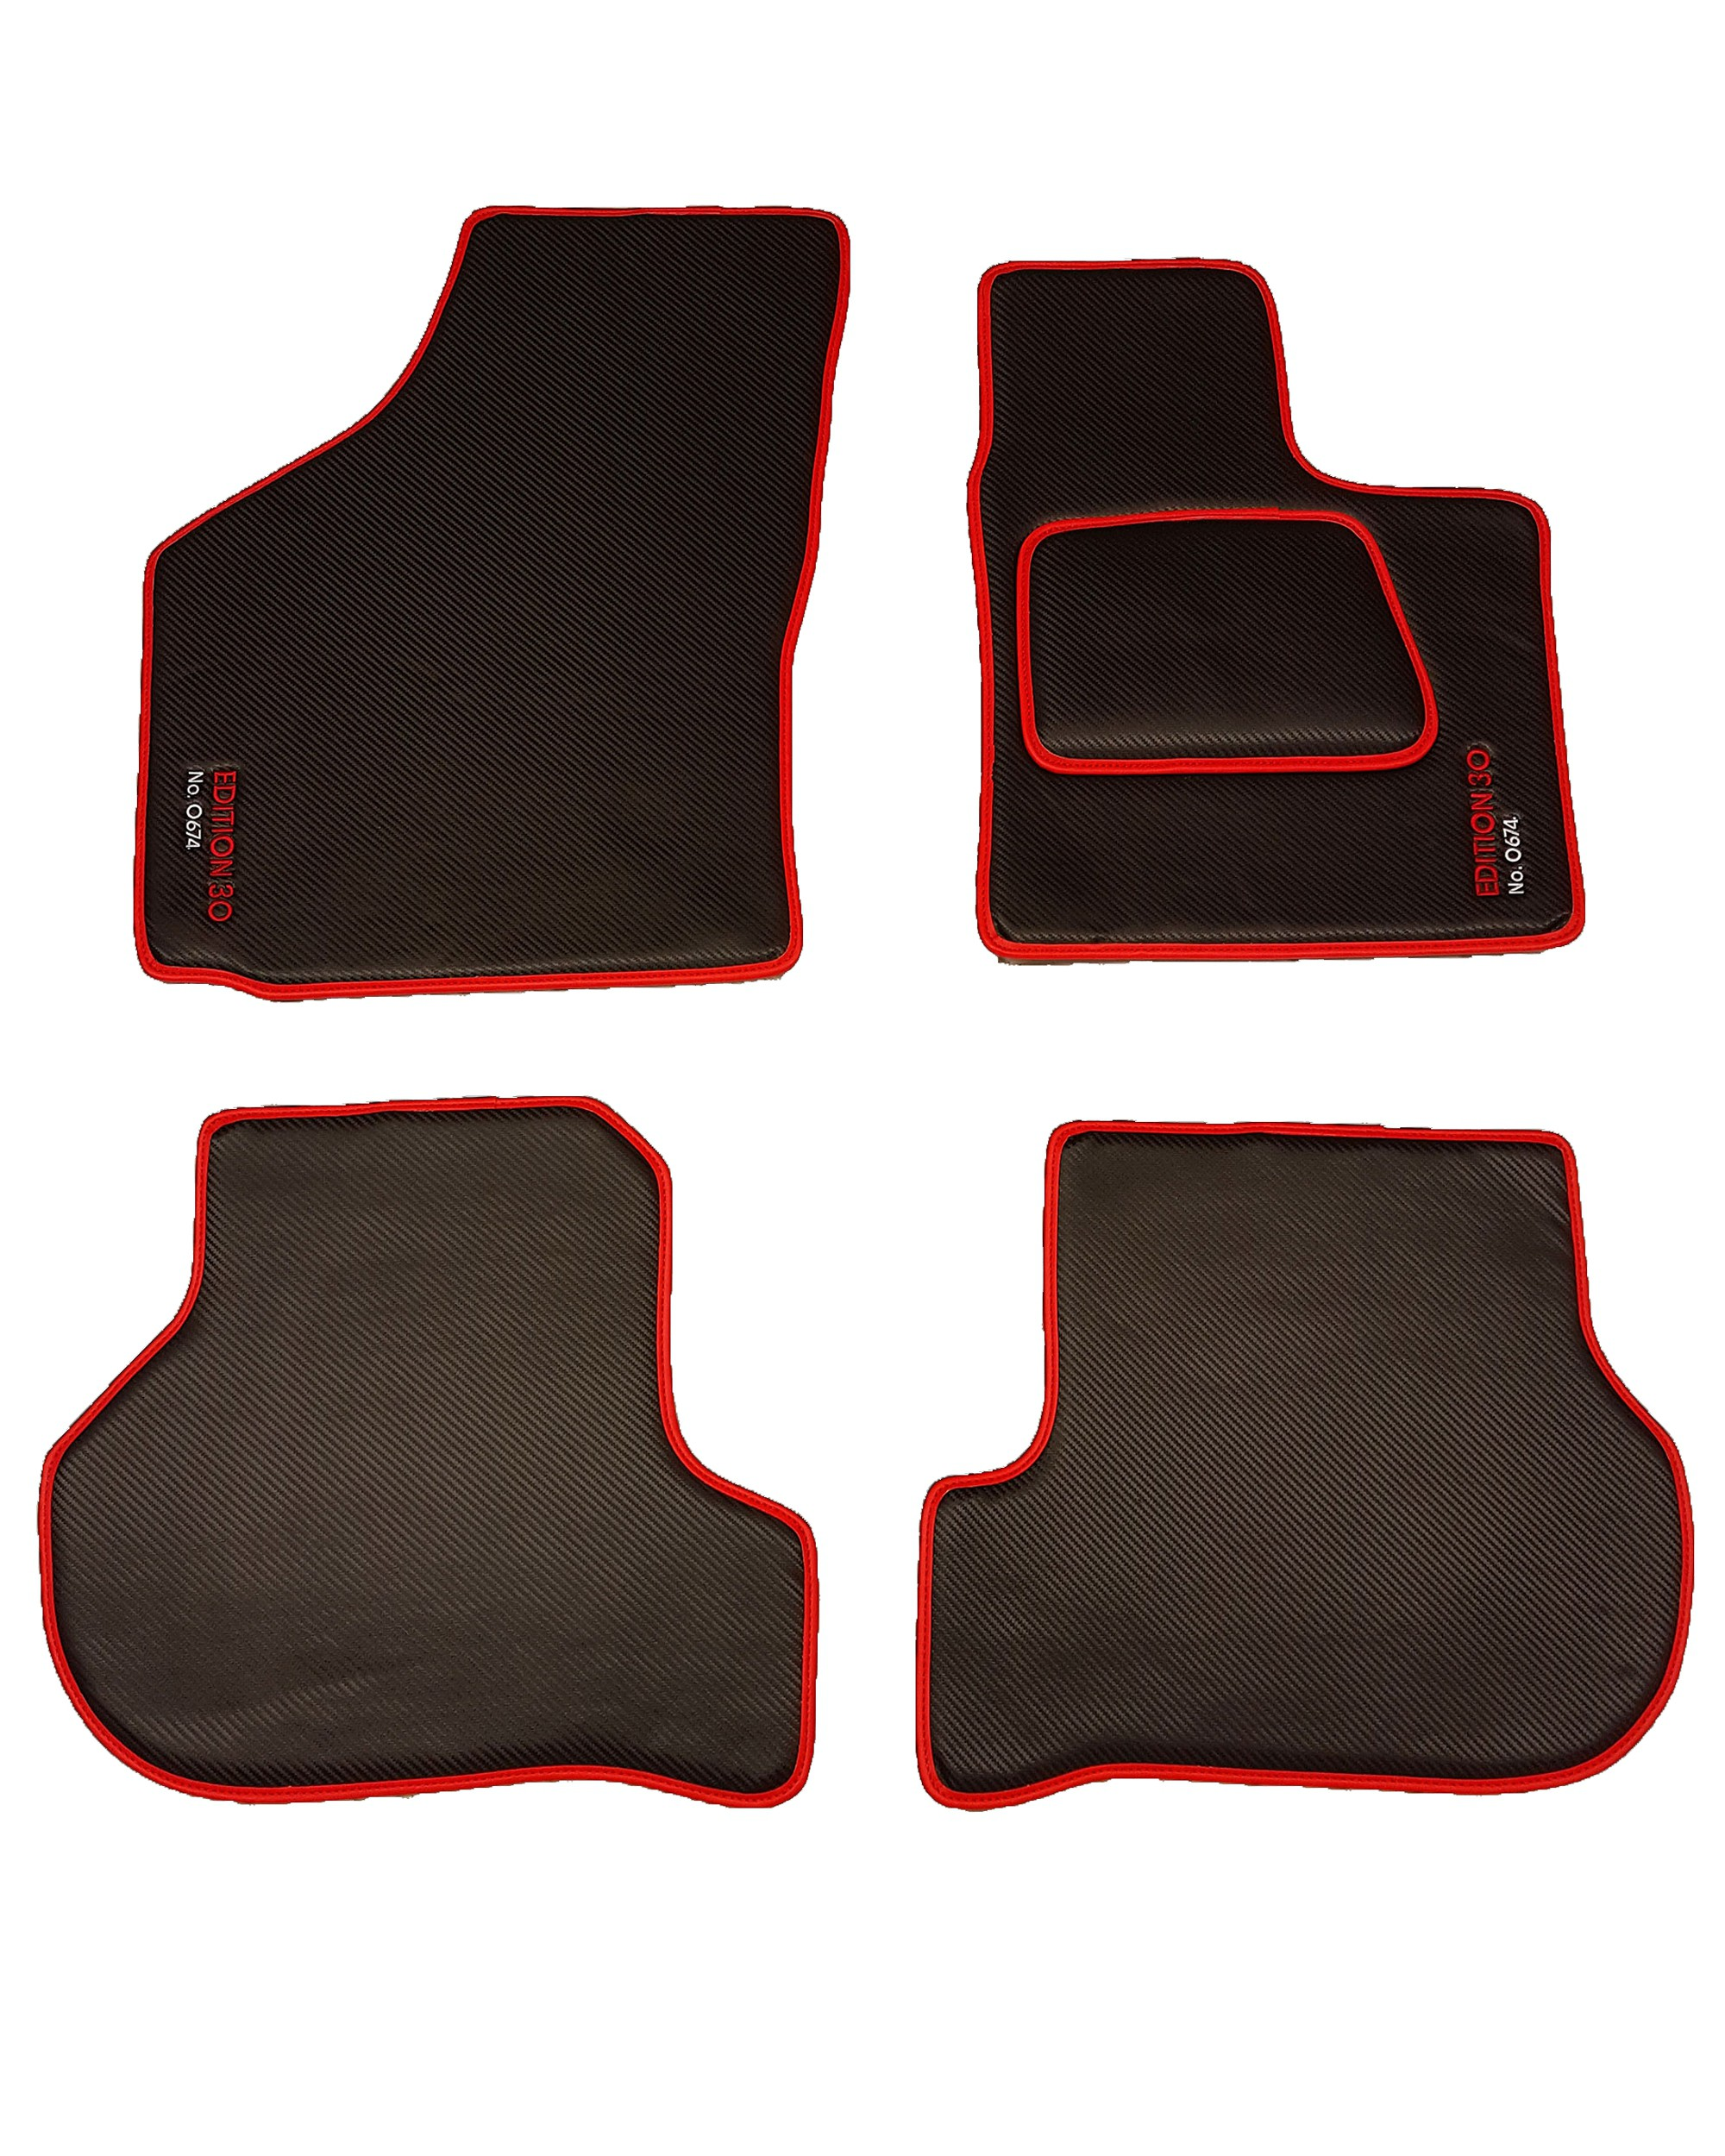 VW Golf MK5 / MK6 Bespoke Floor Mats